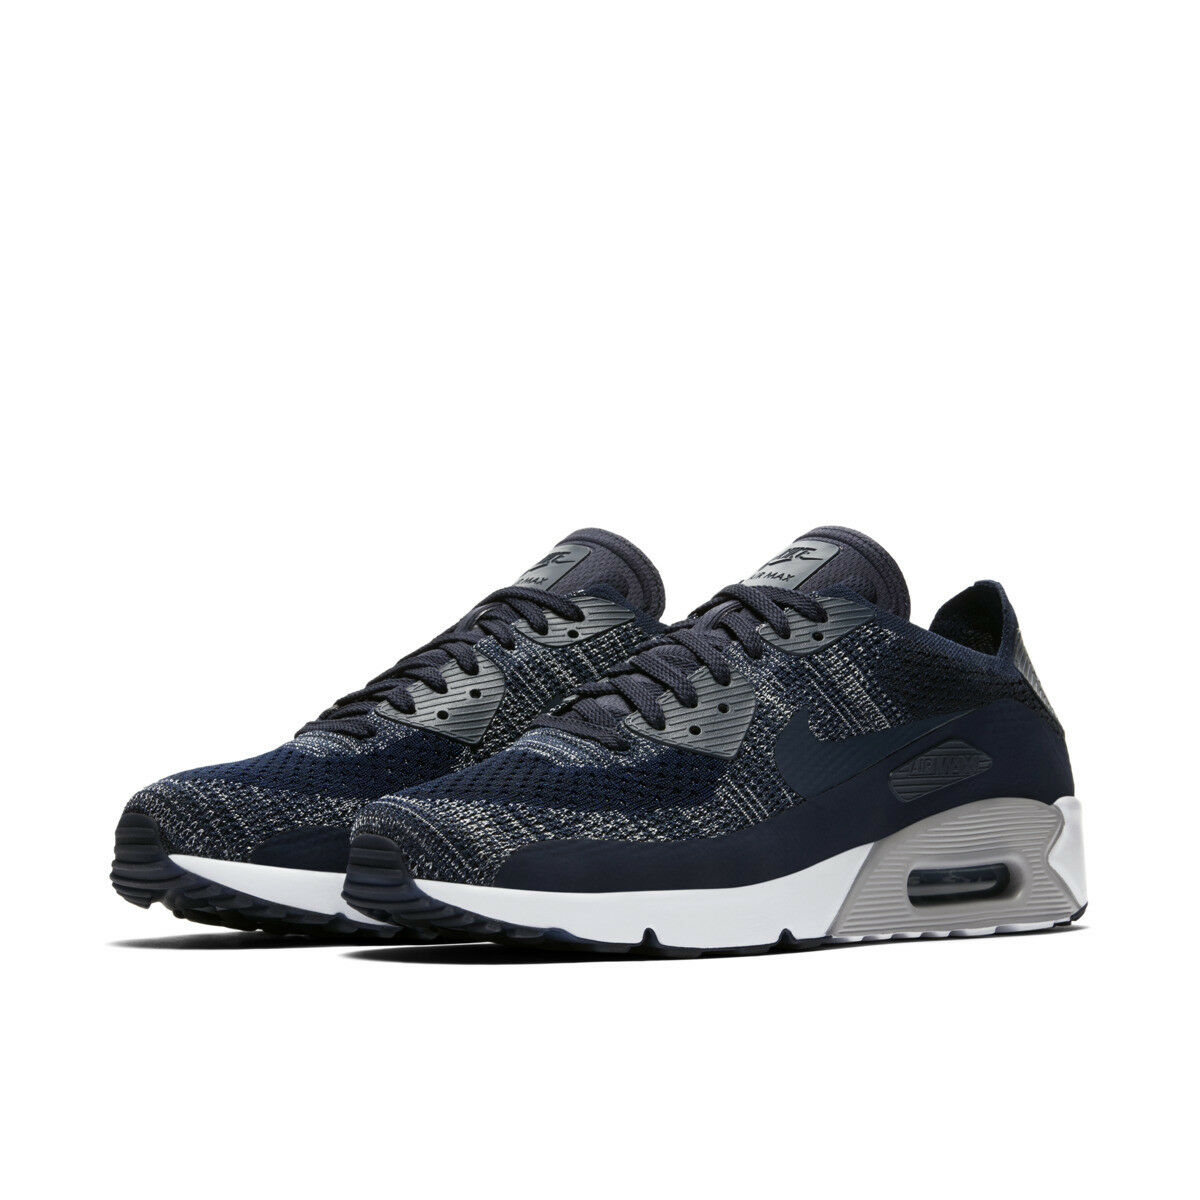 low priced 0bb86 e8e37 Mens Nike Air Max 90 Ultra 2.0 Flyknit Running Sports Casual ...